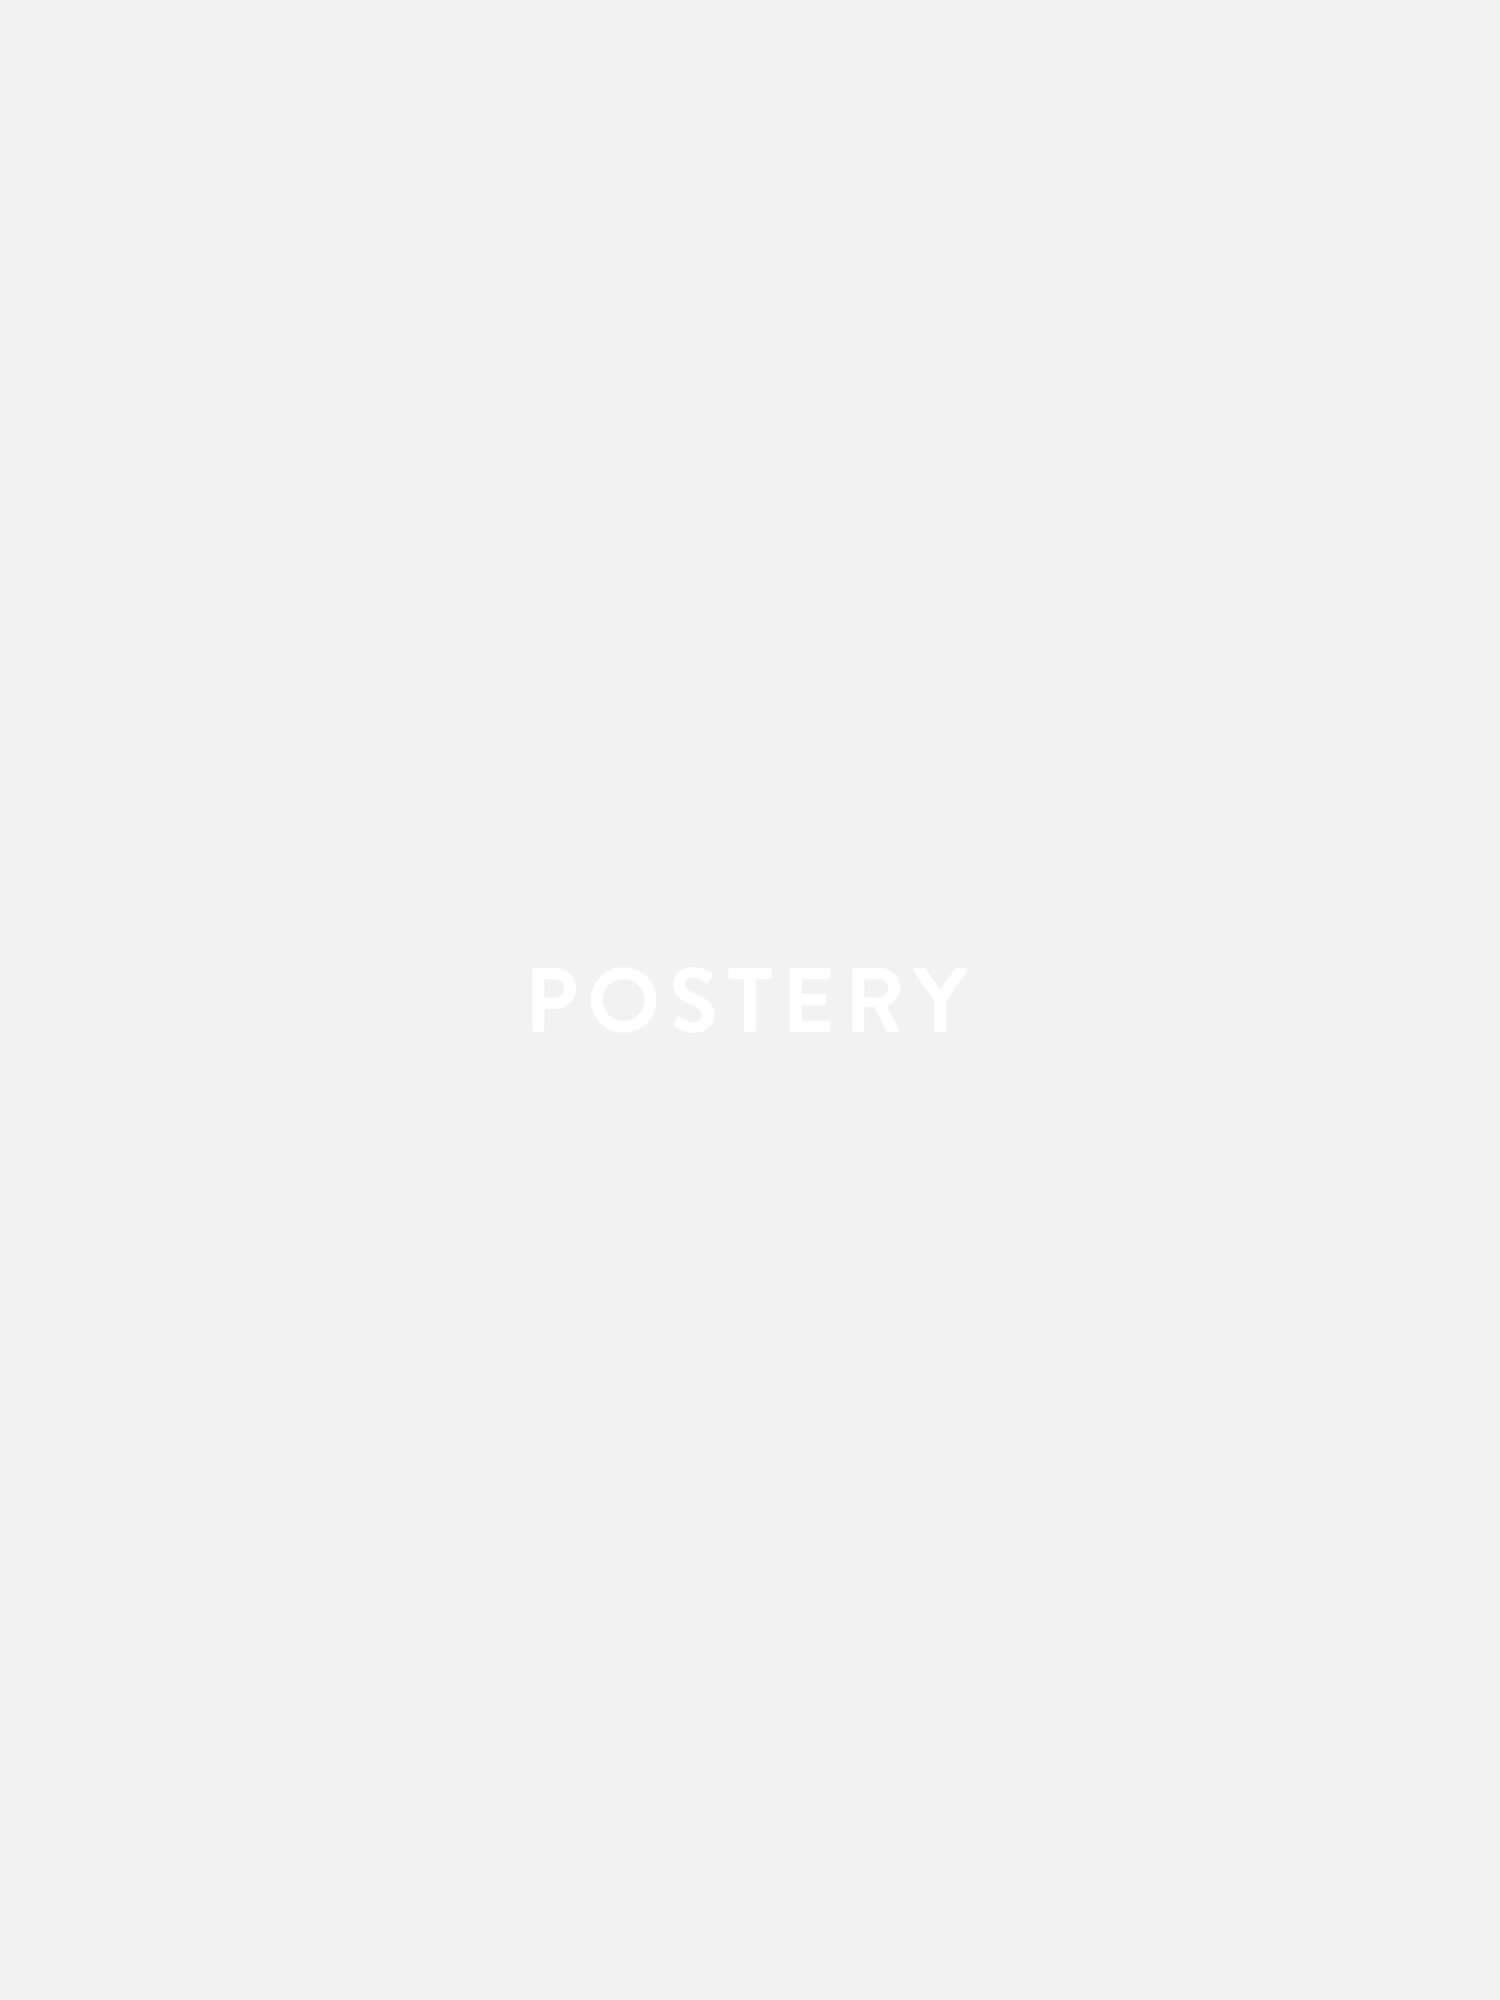 Parisian Buildings Poster